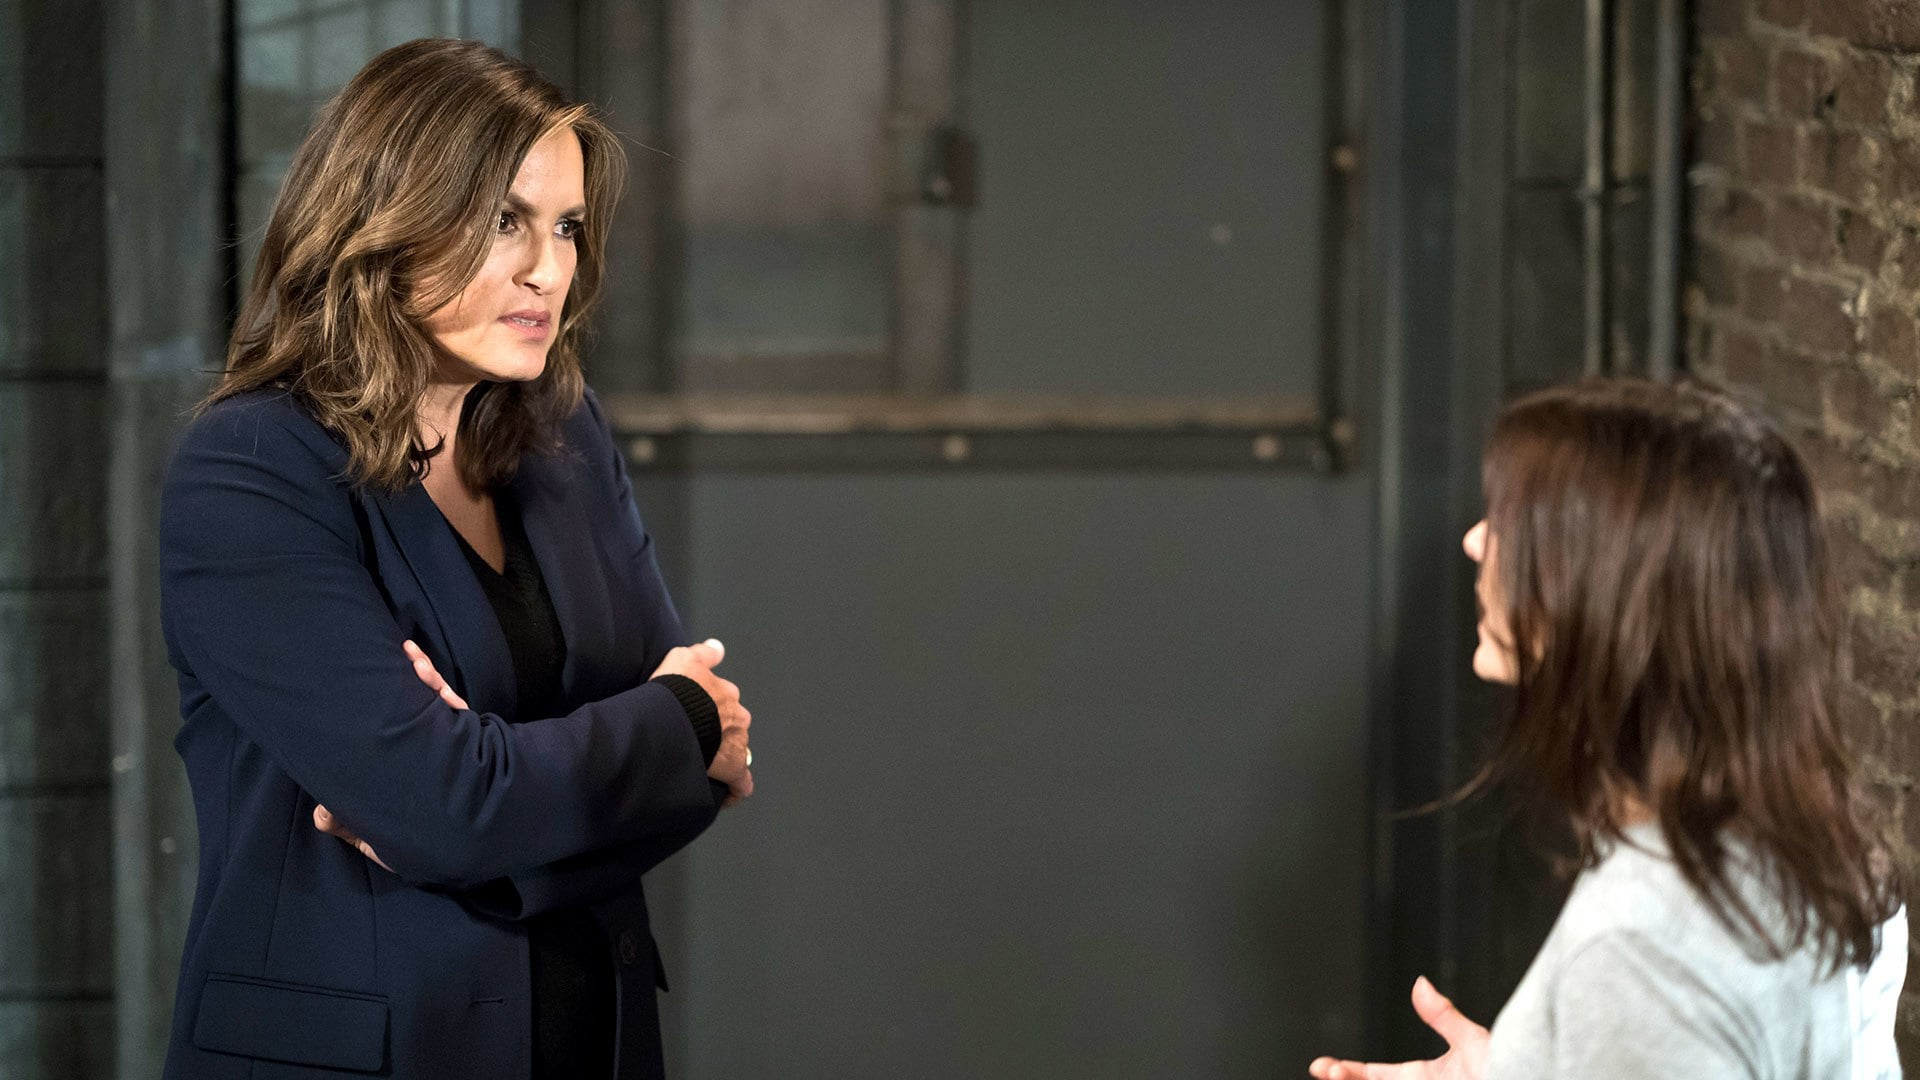 Law & Order: Special Victims Unit - Season 19 Episode 7 : Something Happened